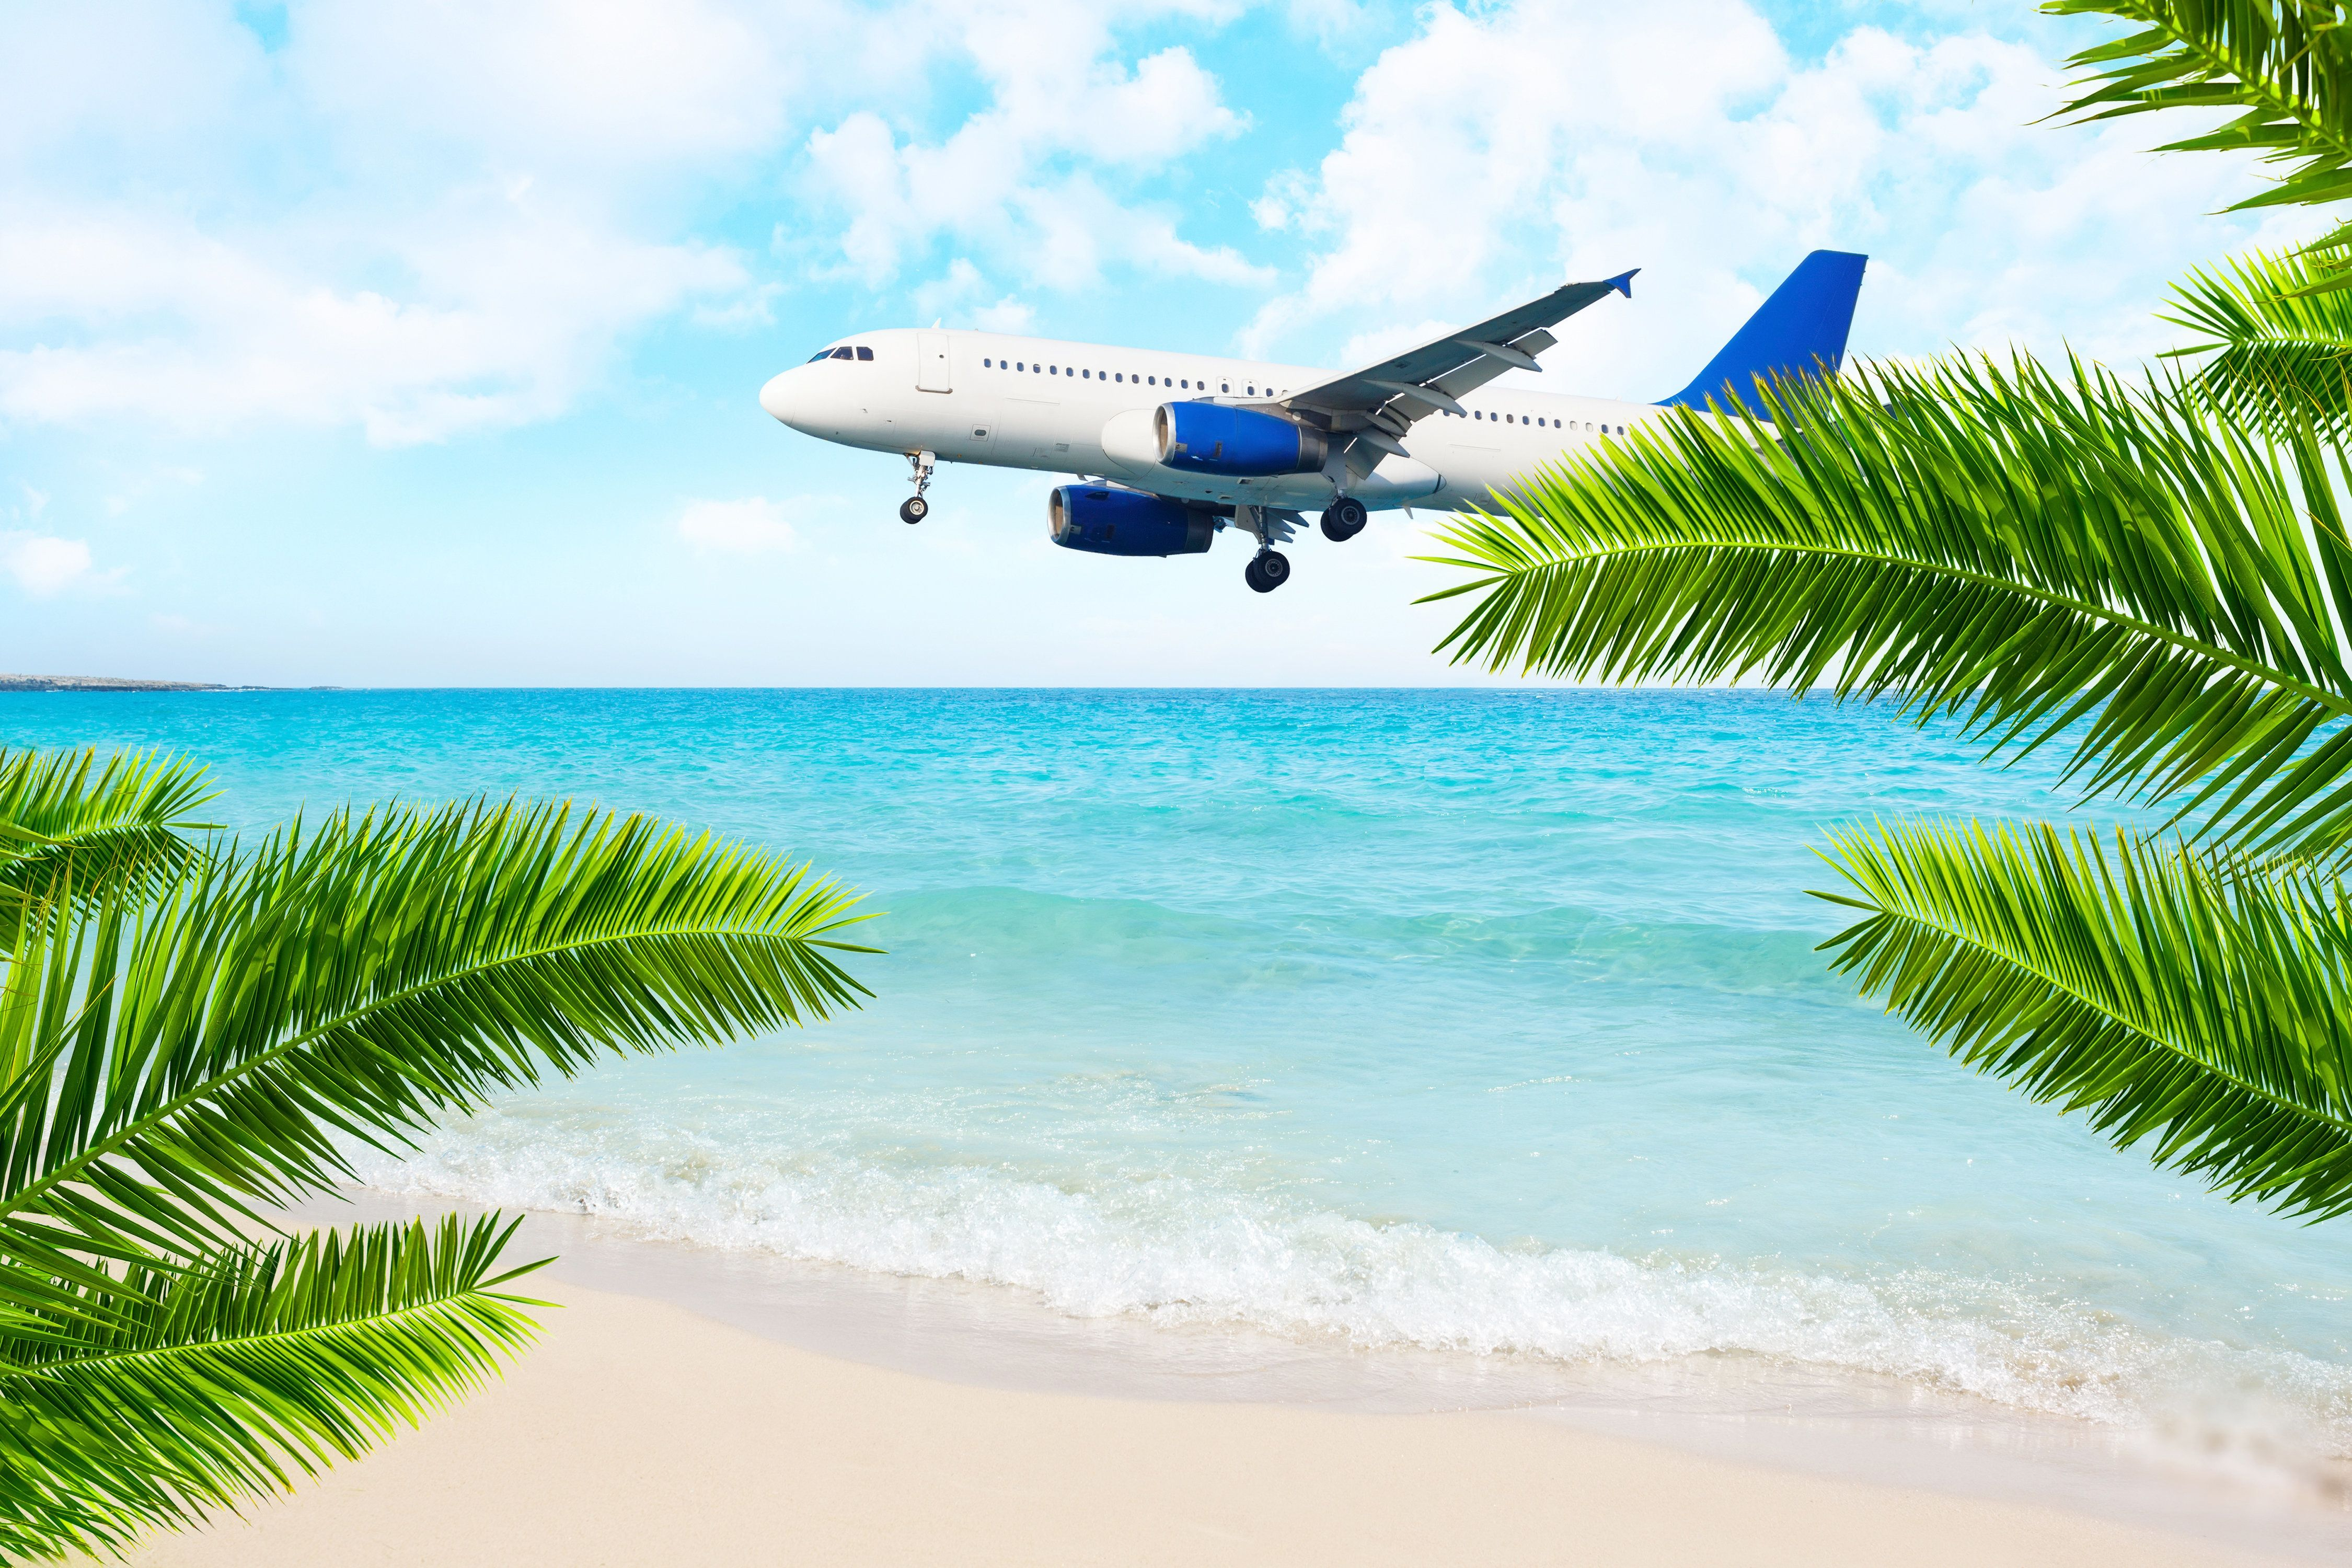 Jet airplane landing over the sea beach. Final approach. Vacation destination.